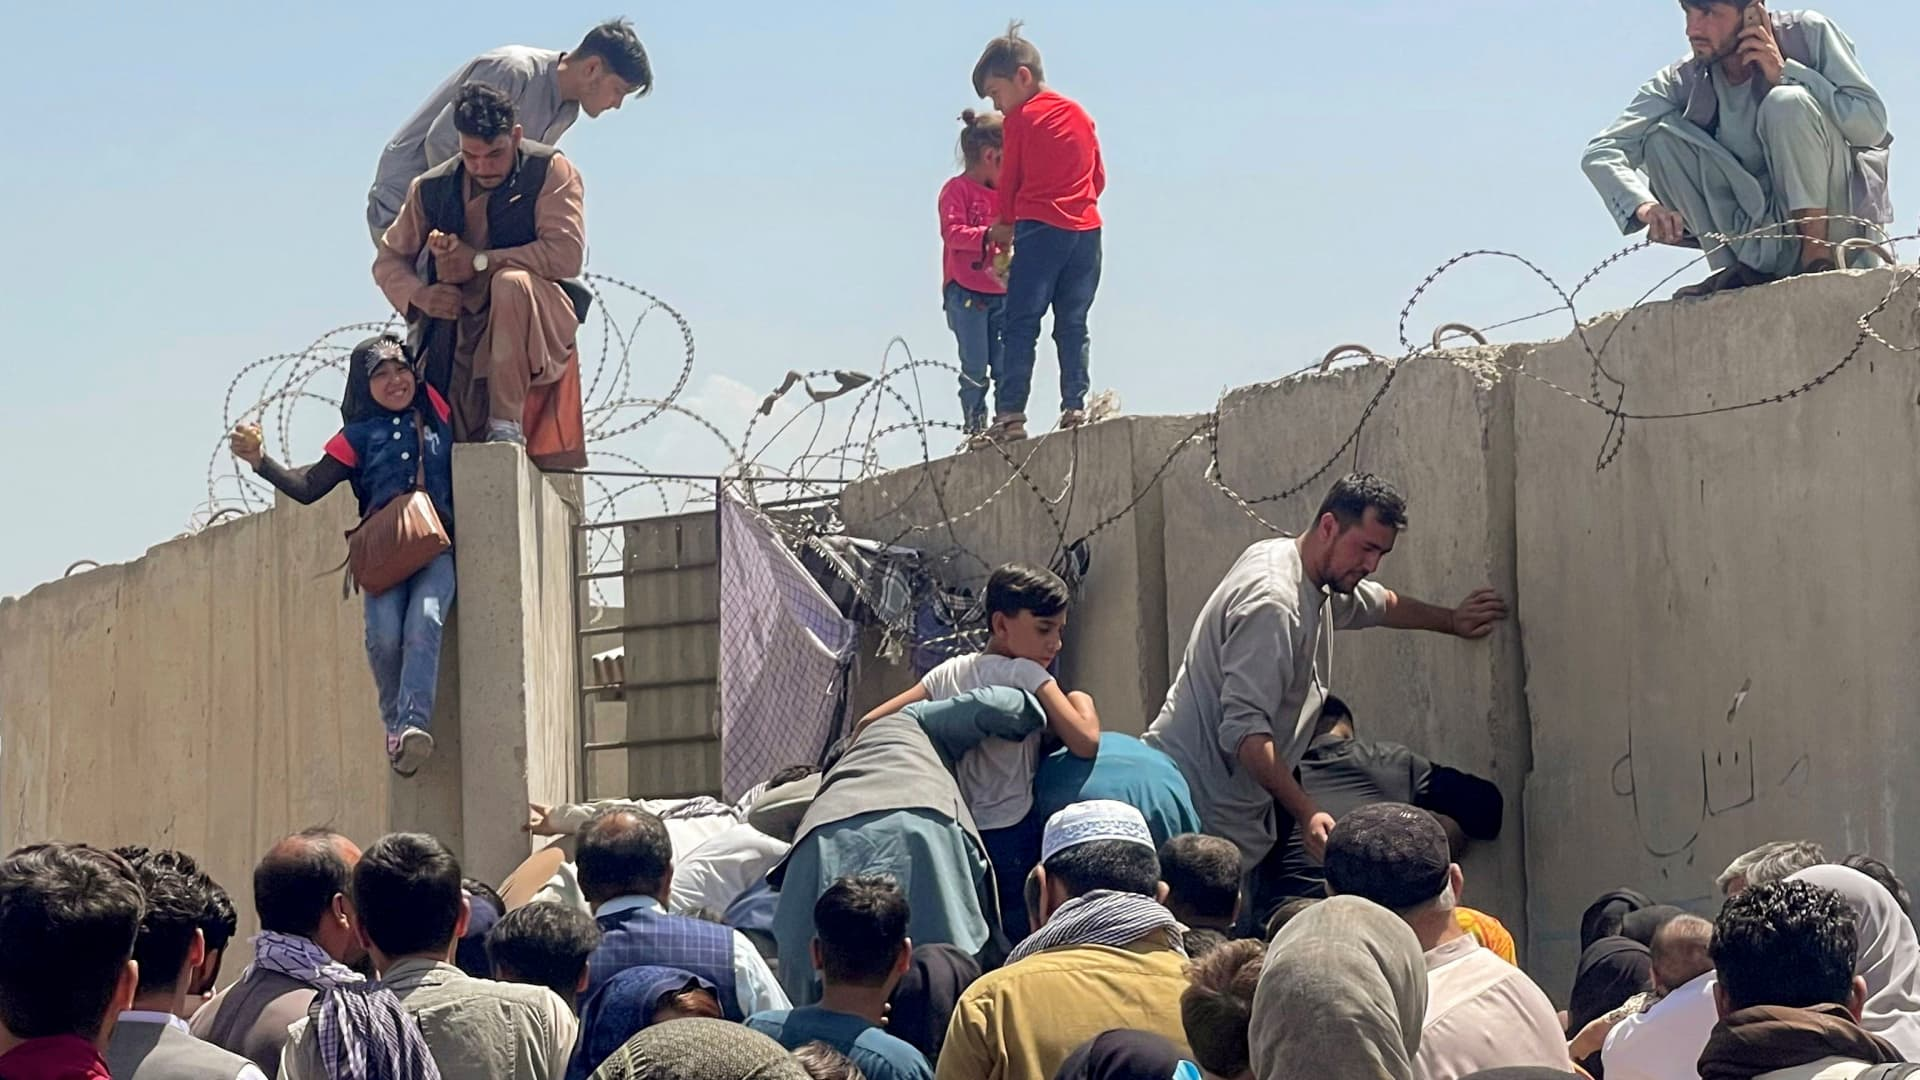 A man pulls a girl to get inside Hamid Karzai International Airport in Kabul, Afghanistan August 16, 2021.